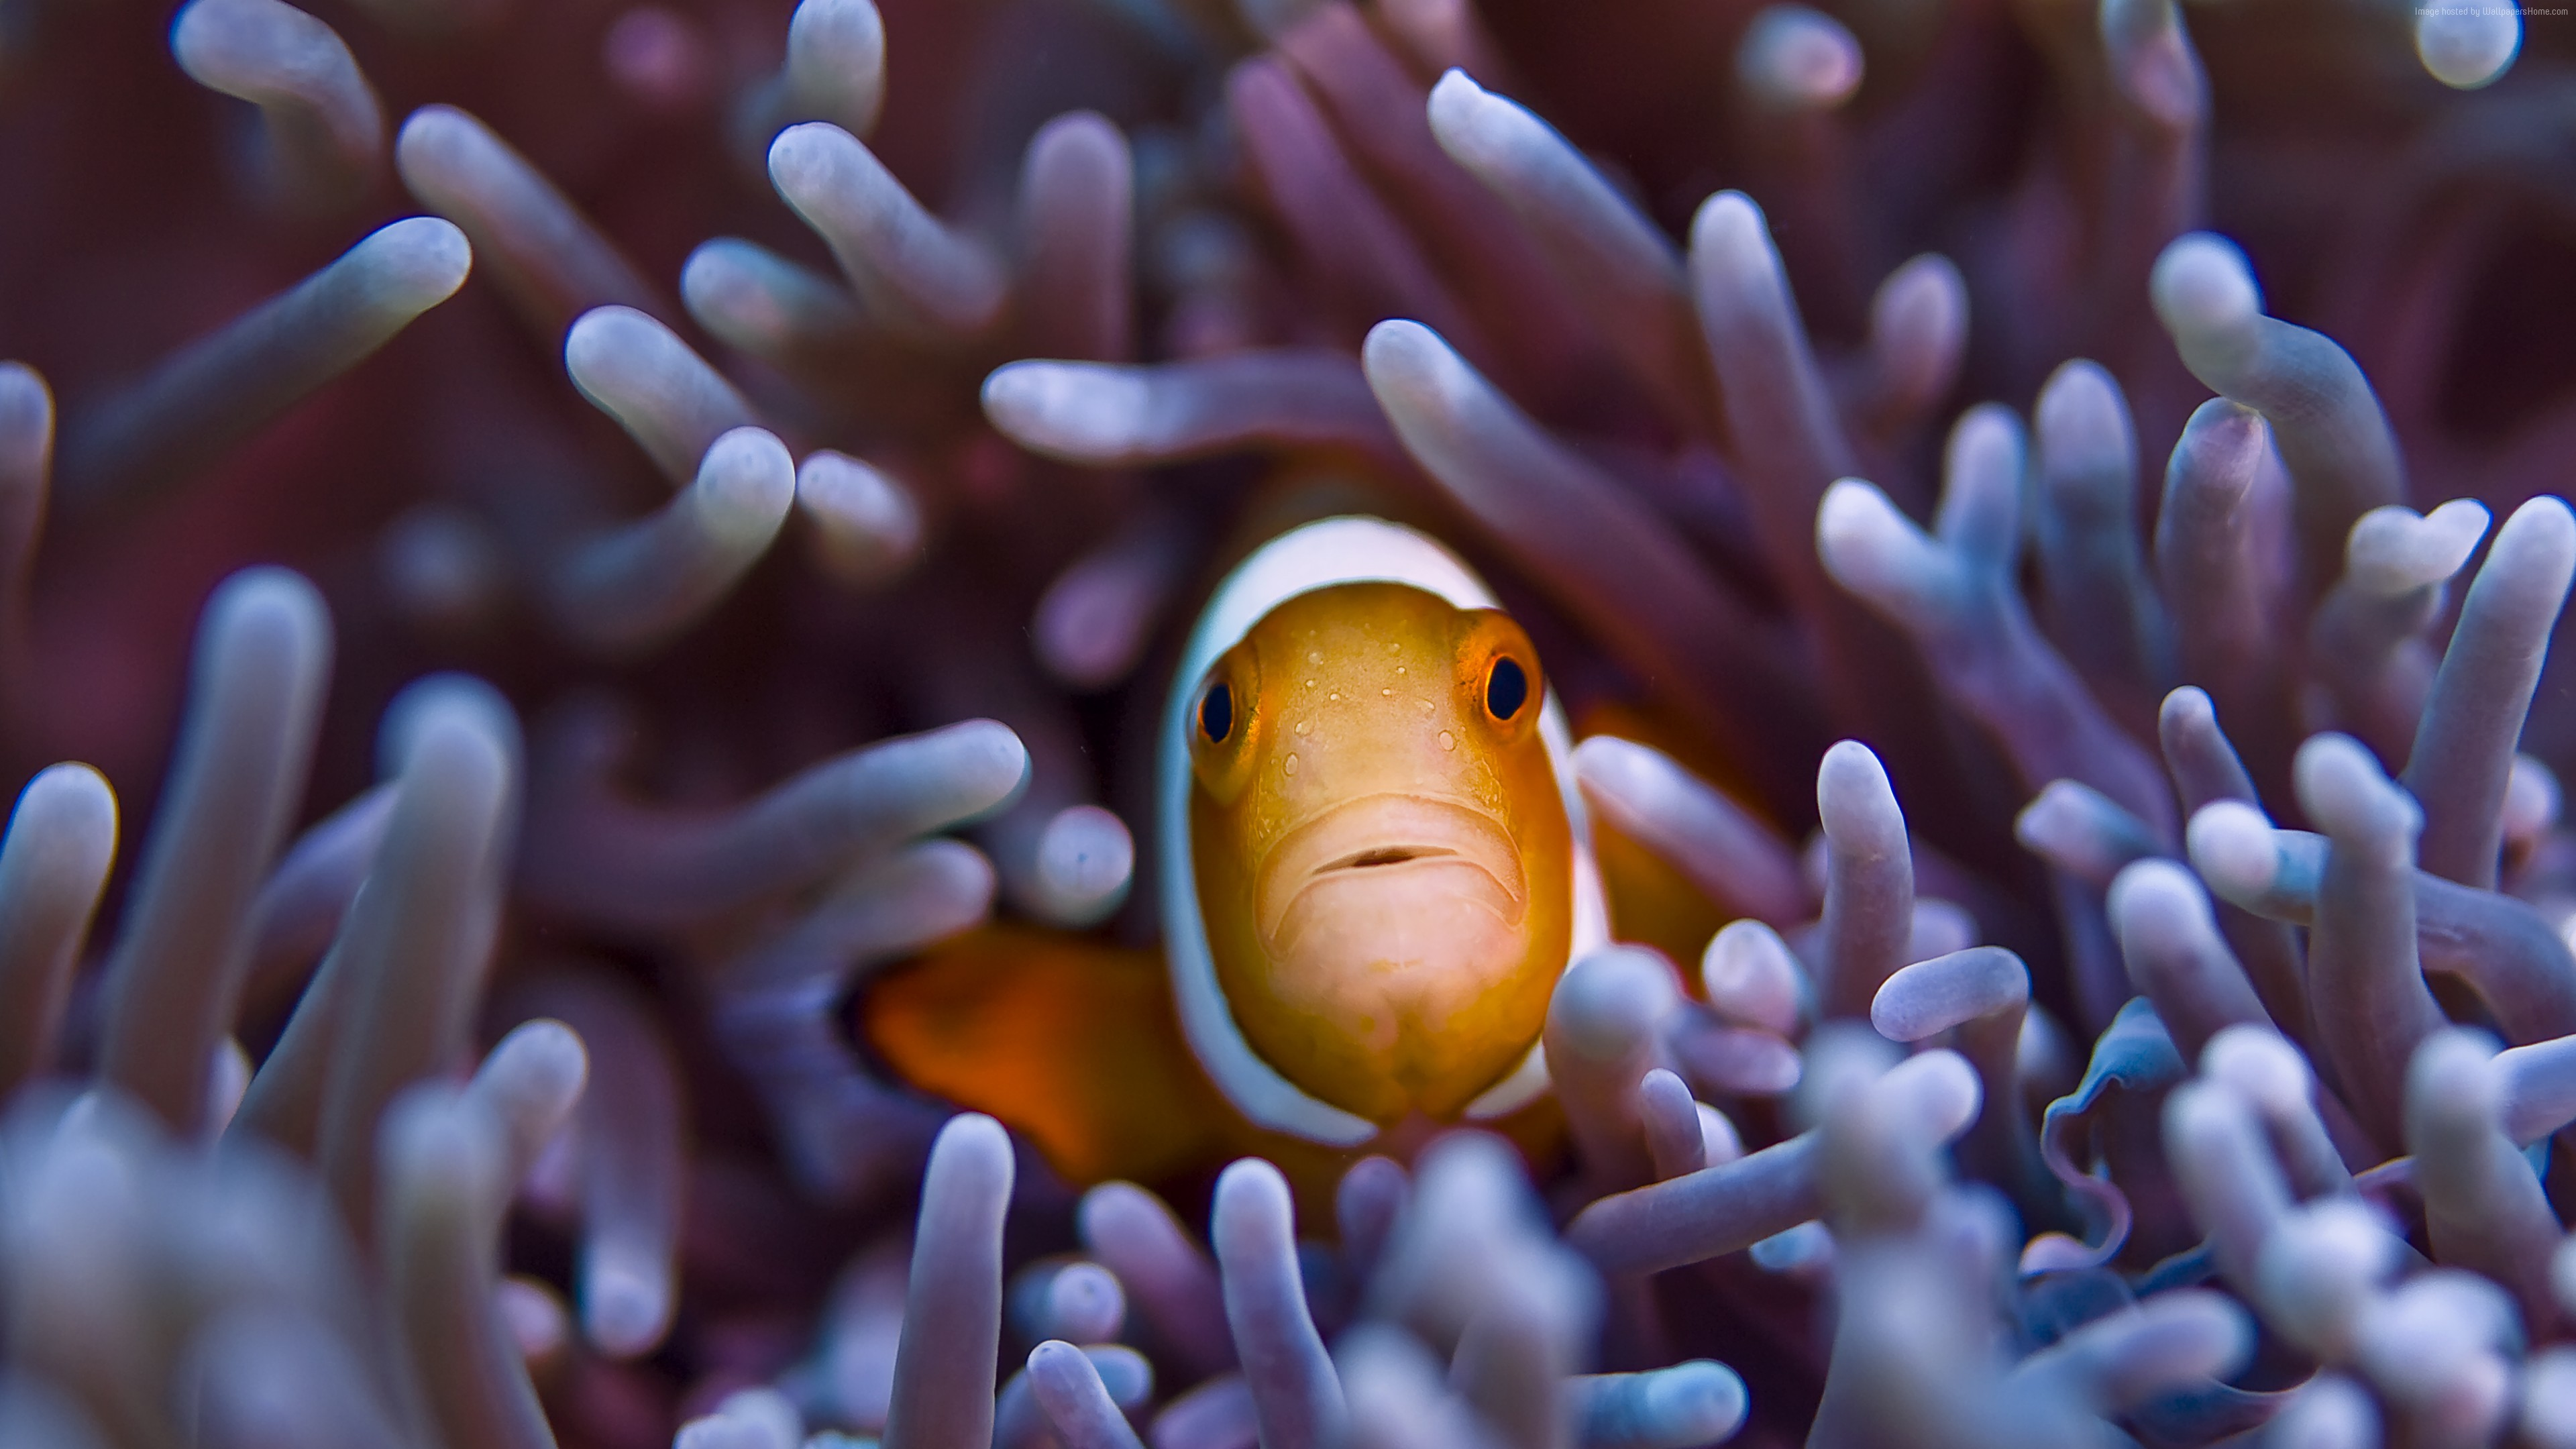 Wallpaper Clownfish, 5k, 4k wallpaper, Gili, Island, Bali, indian, pacific, underwater, diving, tourism, orange, sealife, sea, ocean, World&